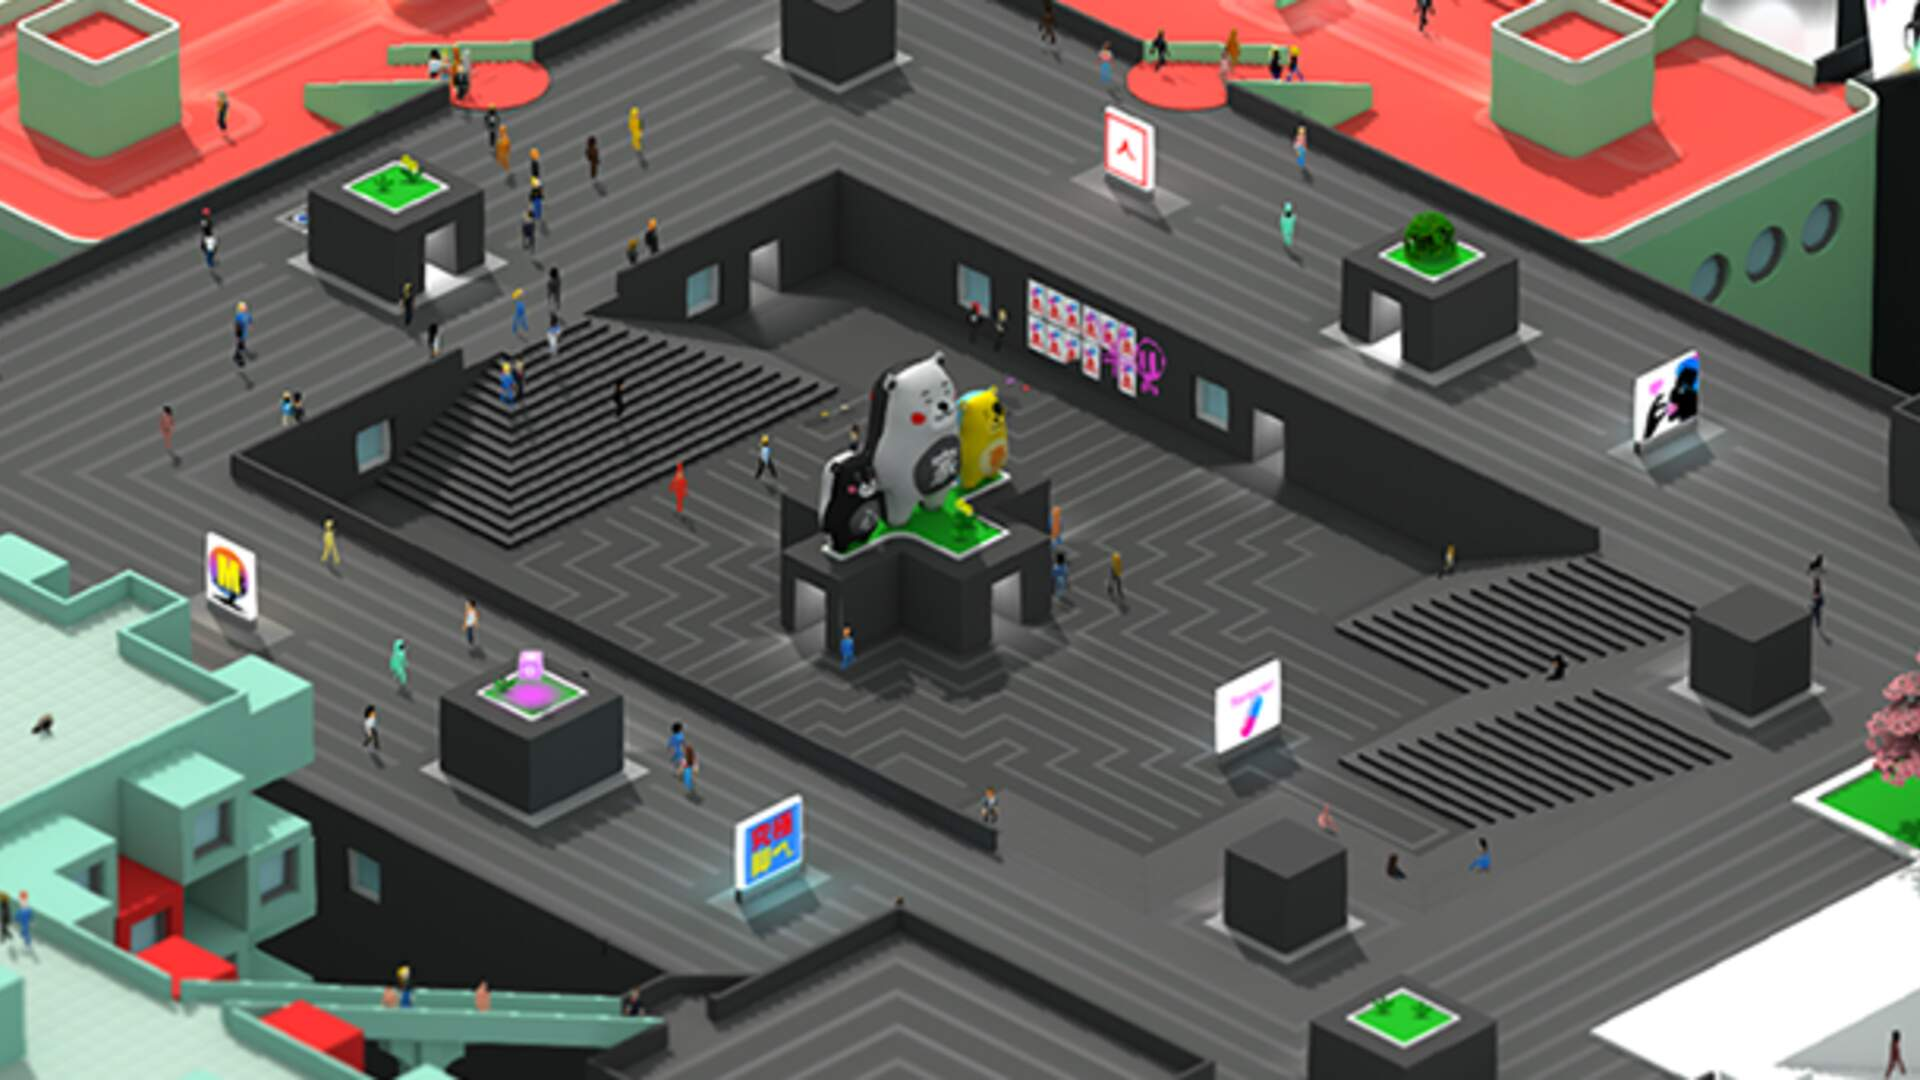 Tokyo 42: Come for the Pop Color, Stay for the Brutalist Architecture